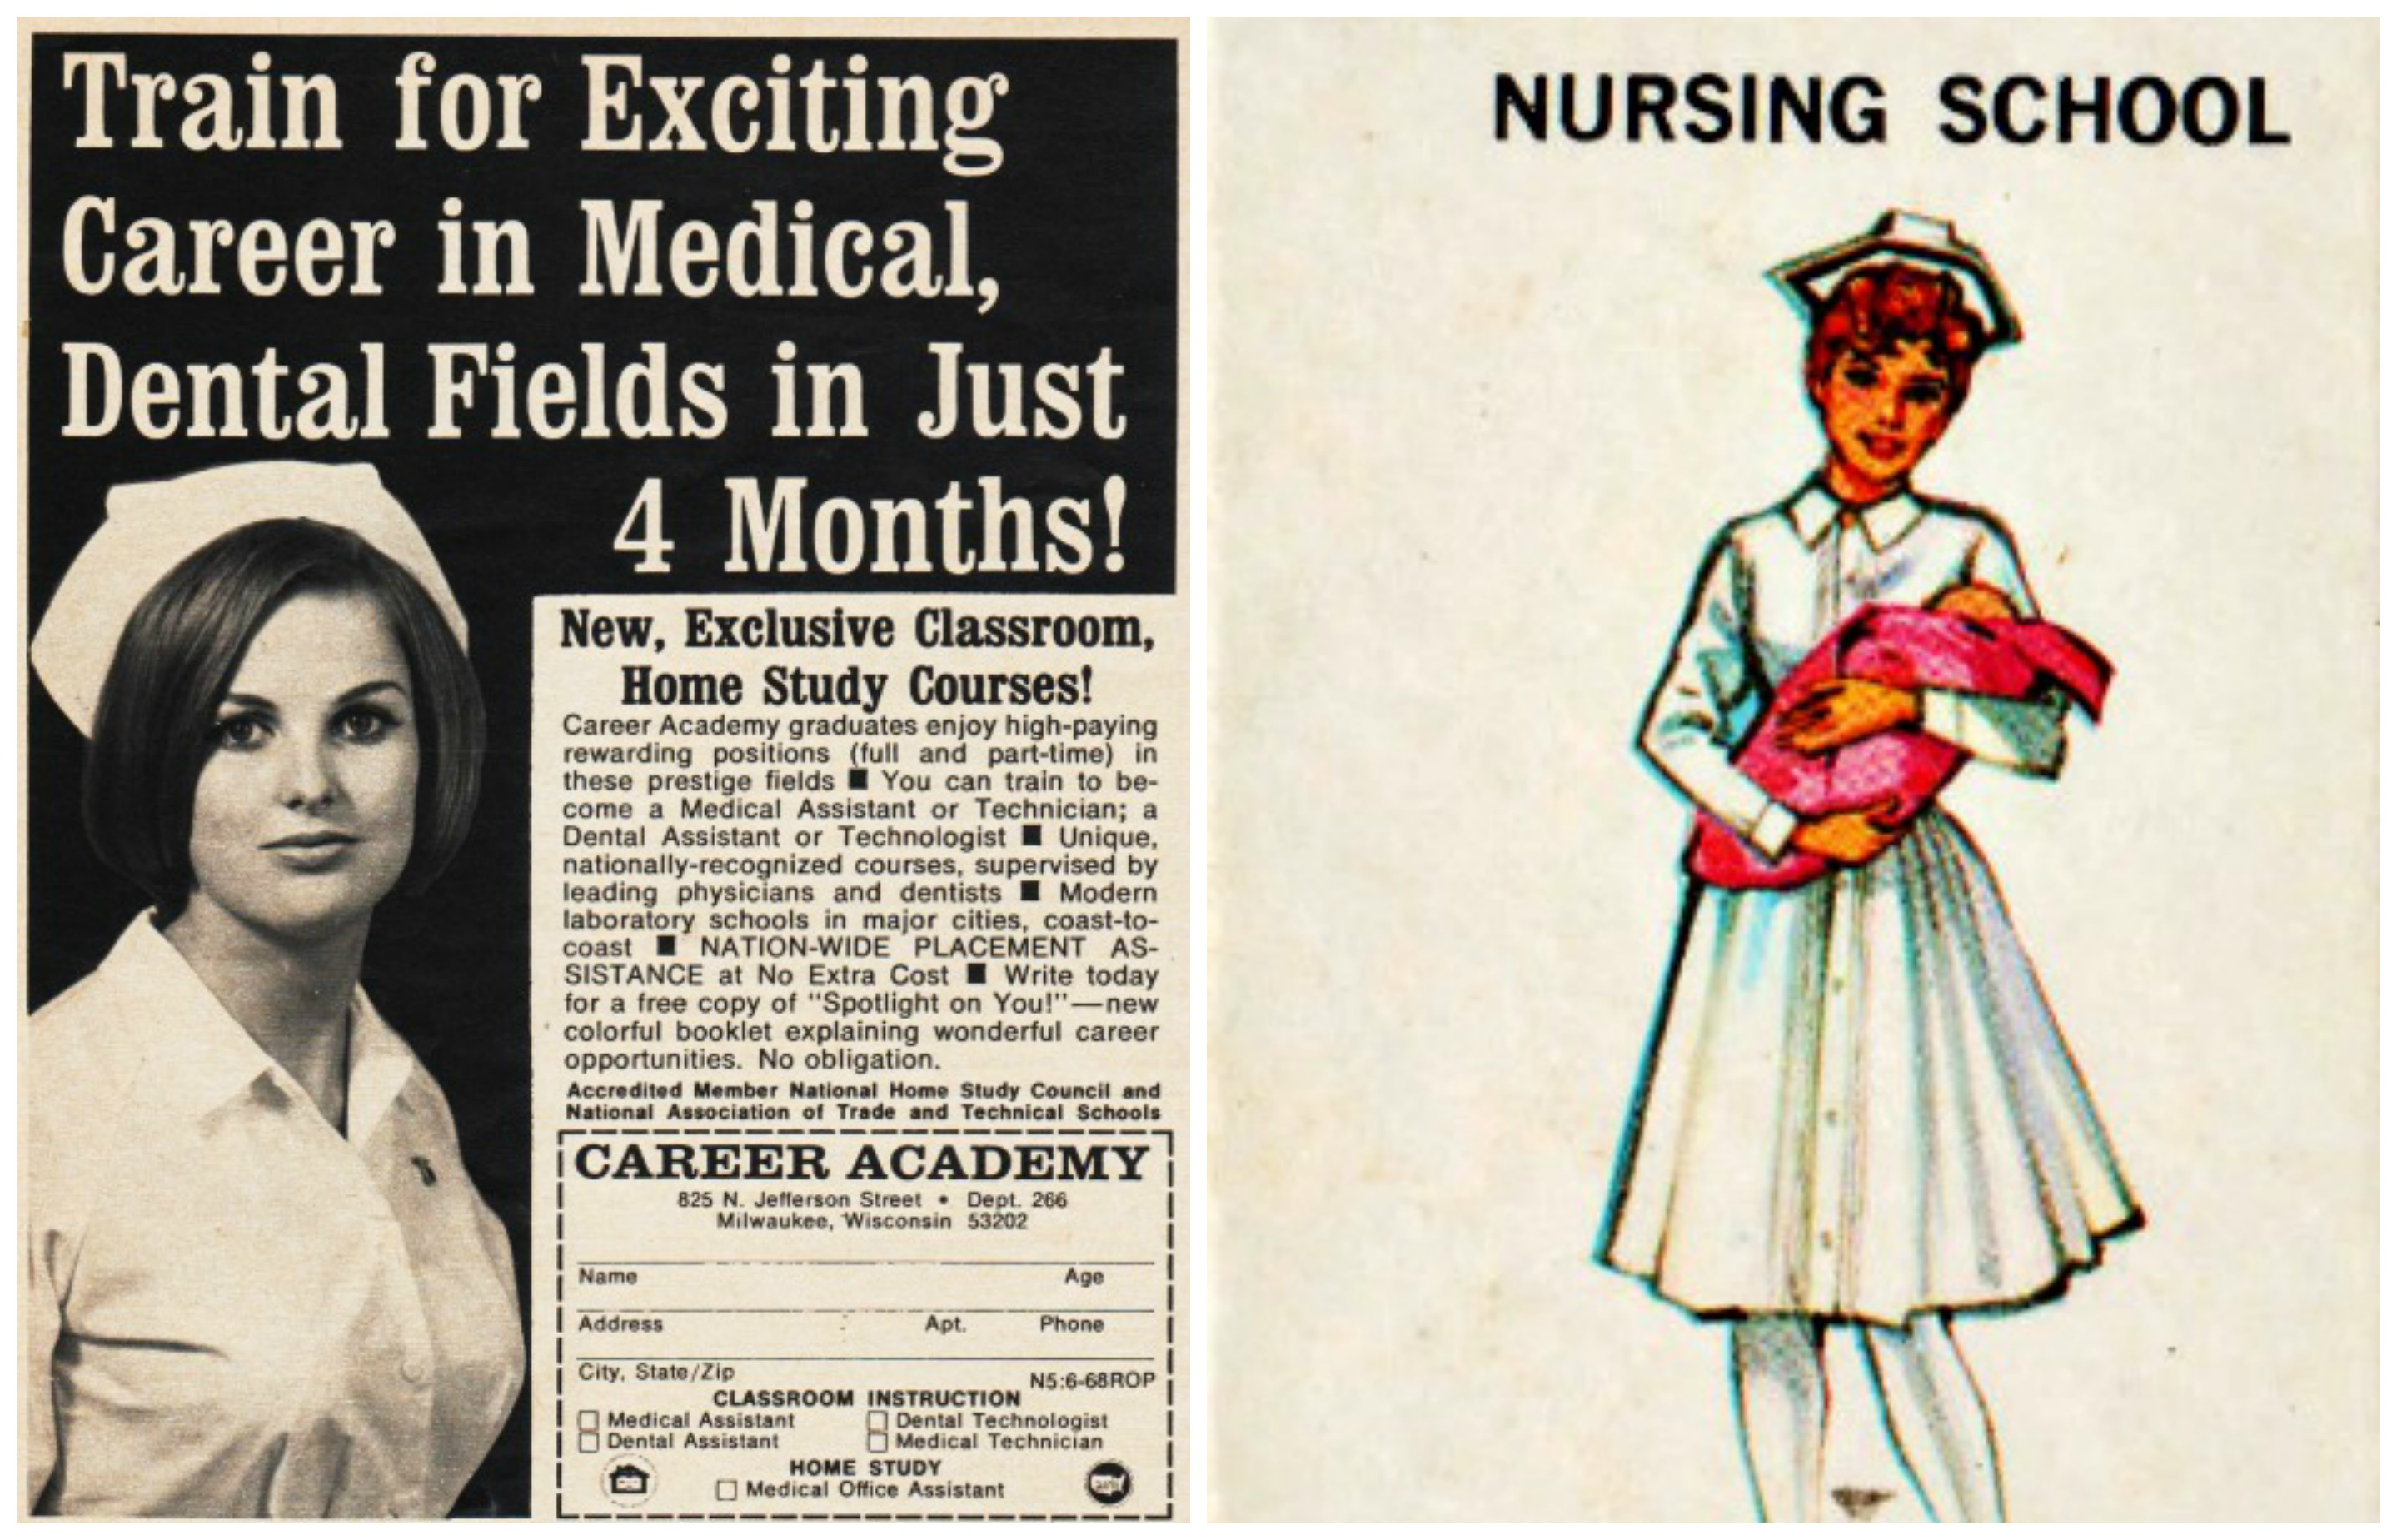 girls games career guidance envisioning the american dream careers nursing